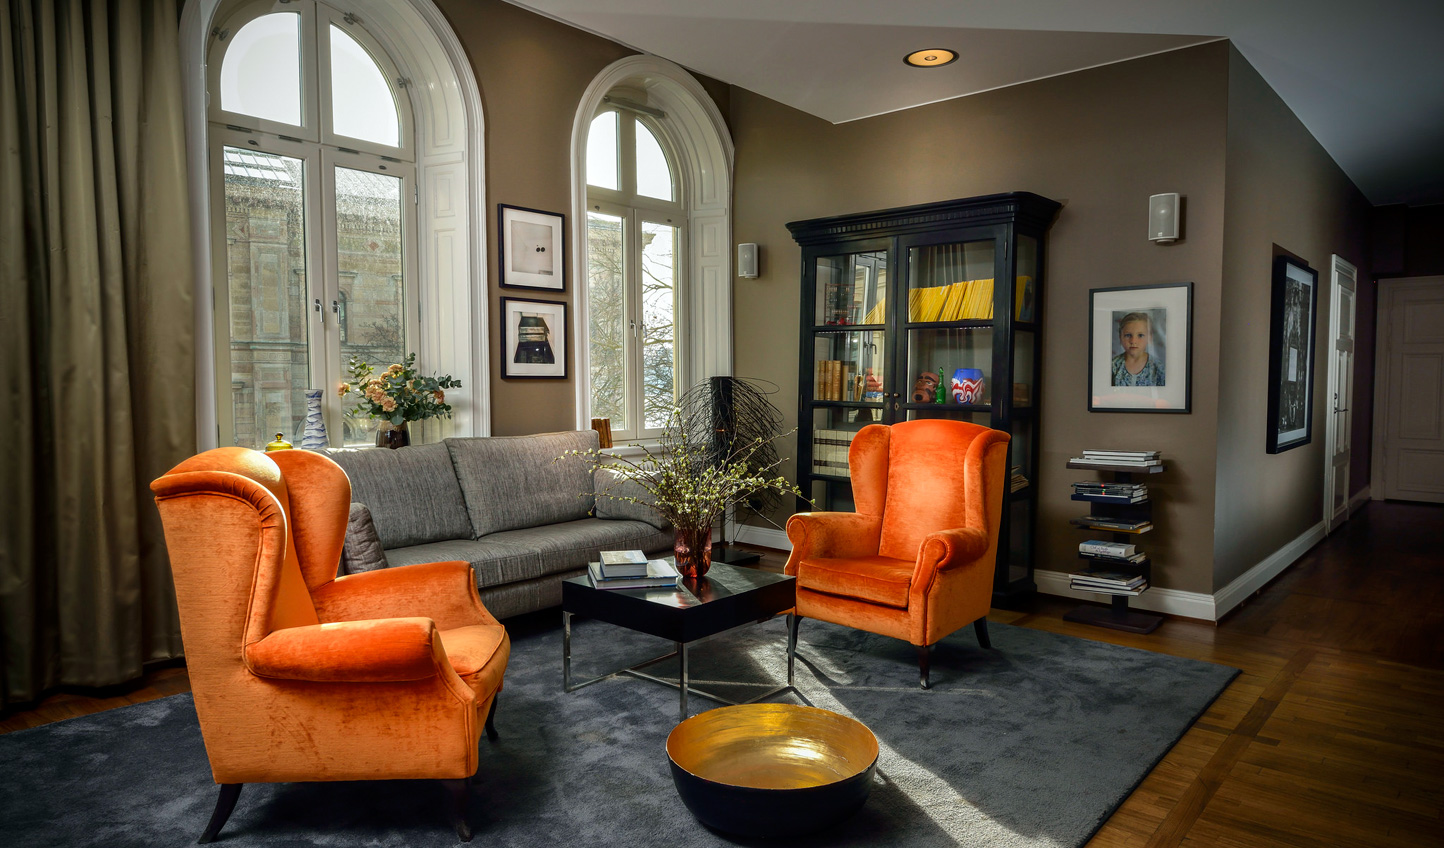 Contemporary chic at the Lydmar Hotel